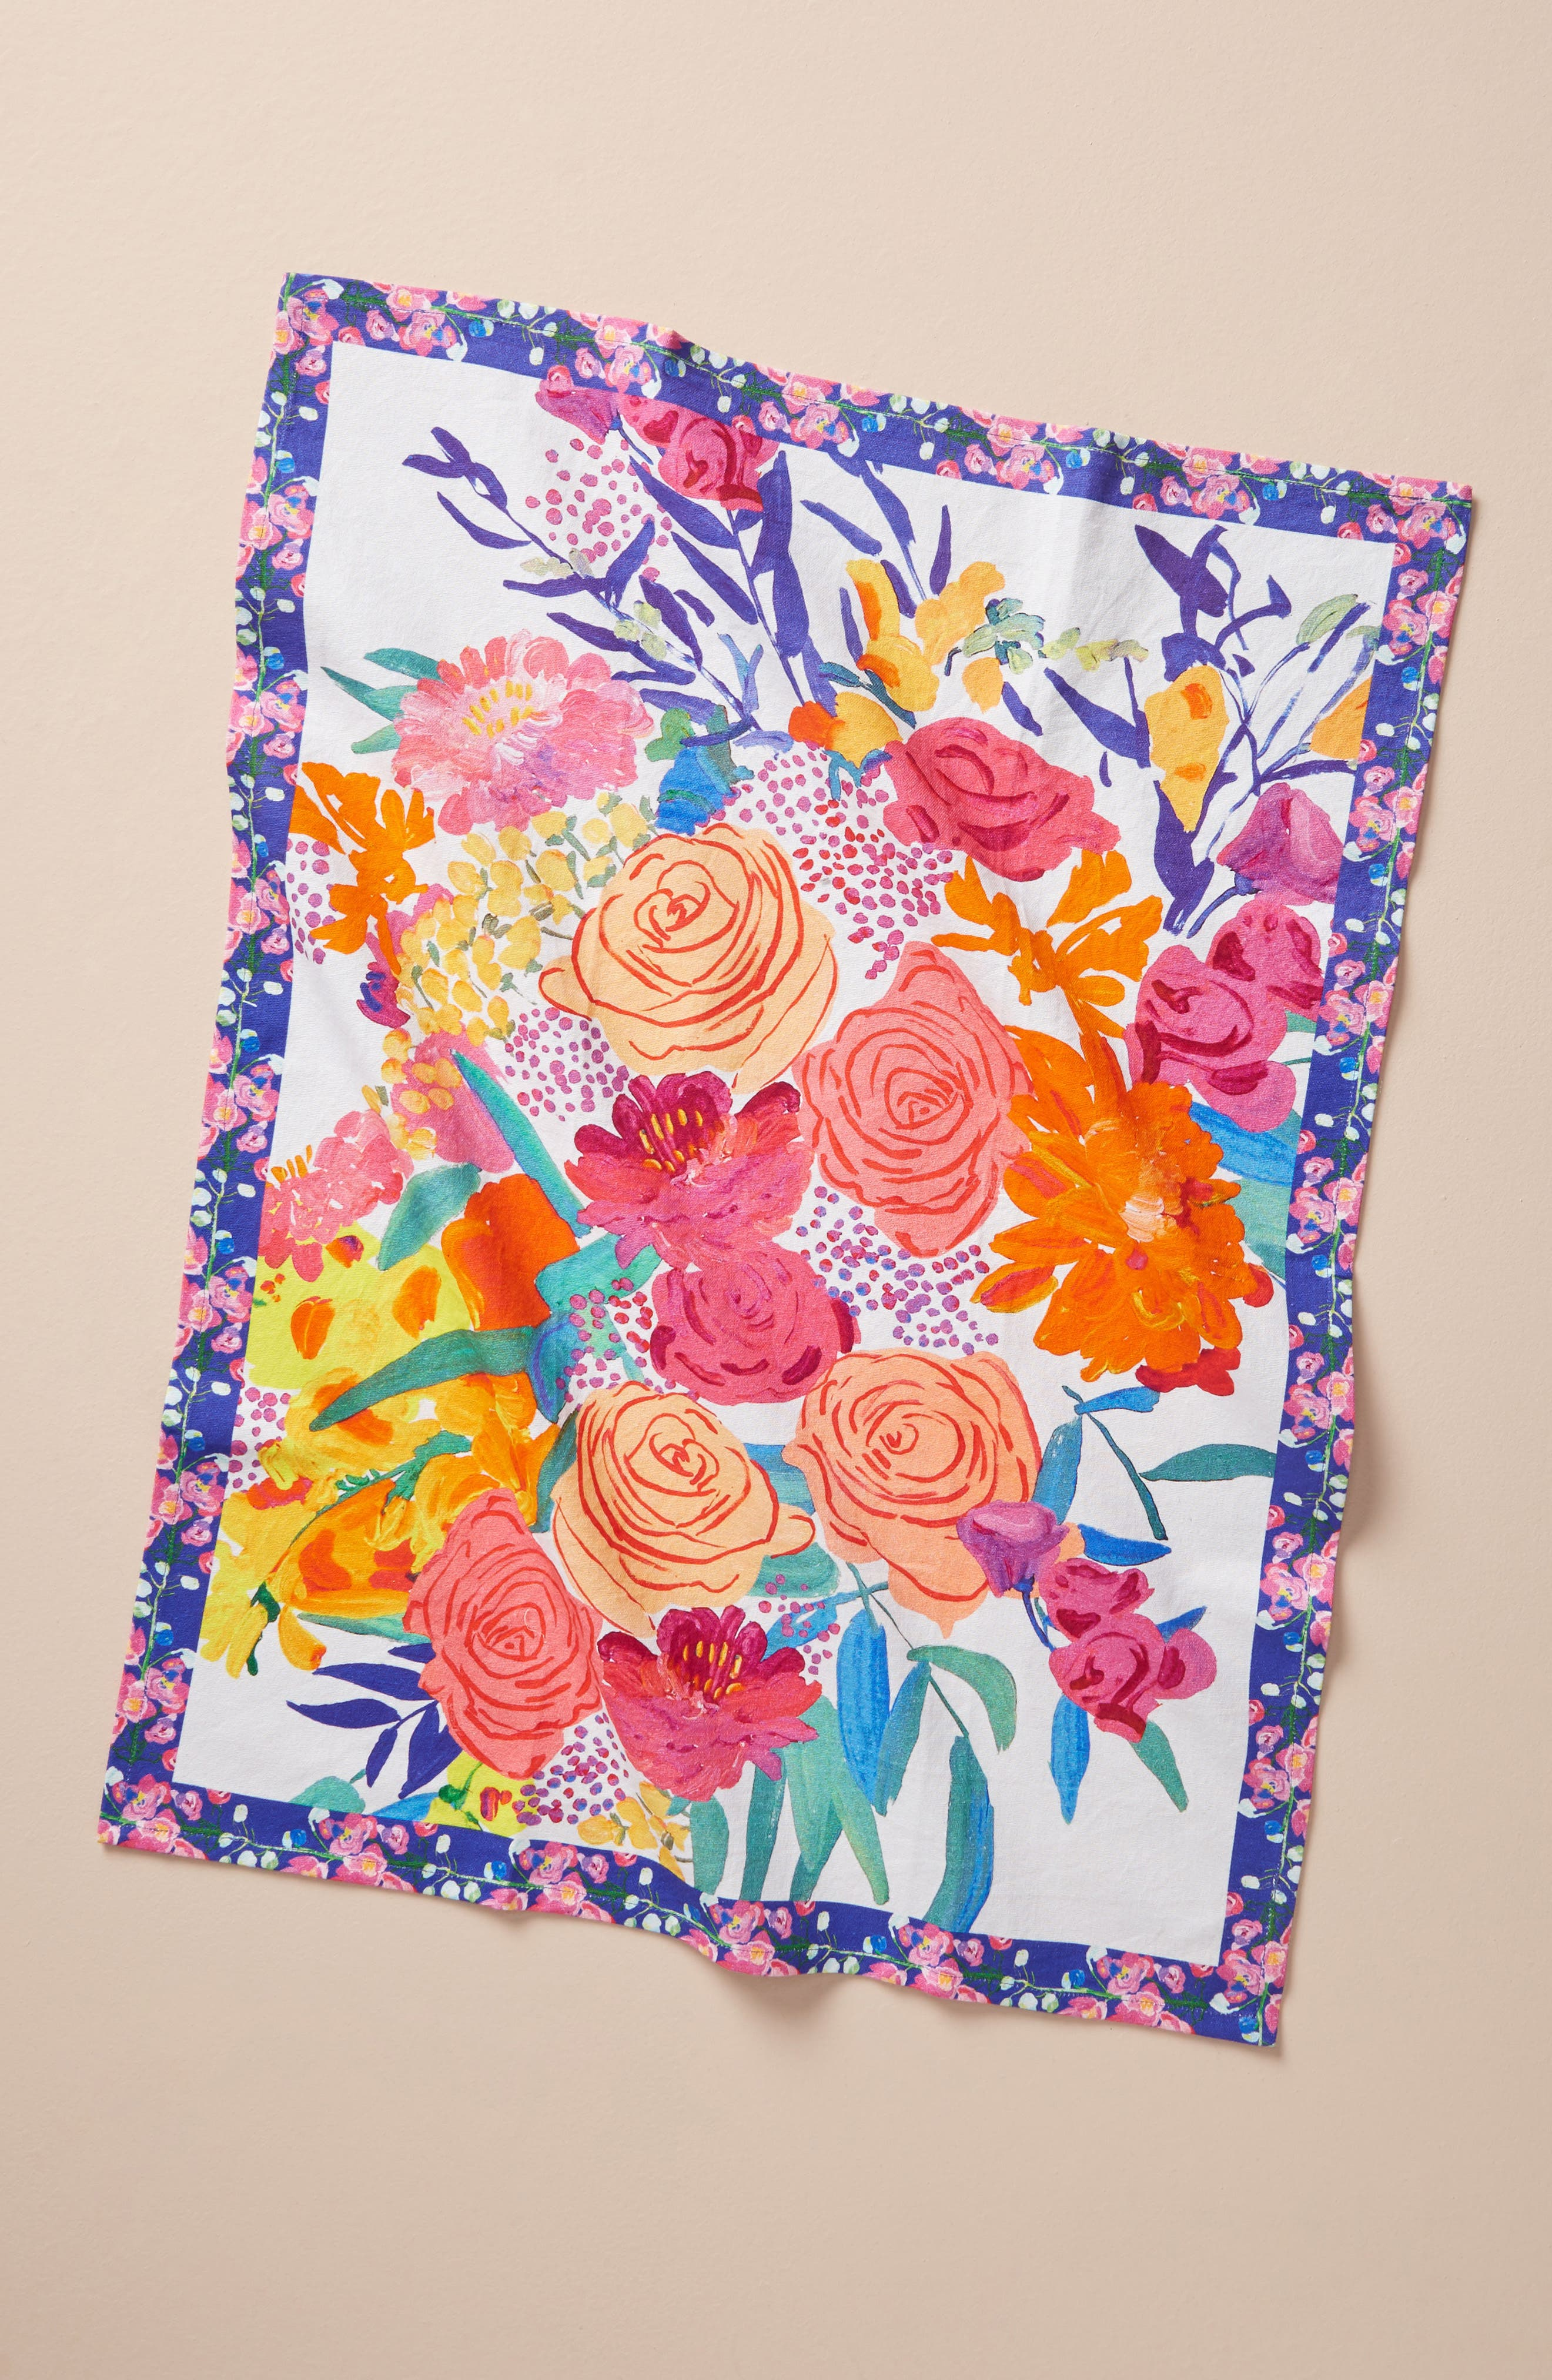 Paint + Petals Dishtowel,                             Main thumbnail 1, color,                             650